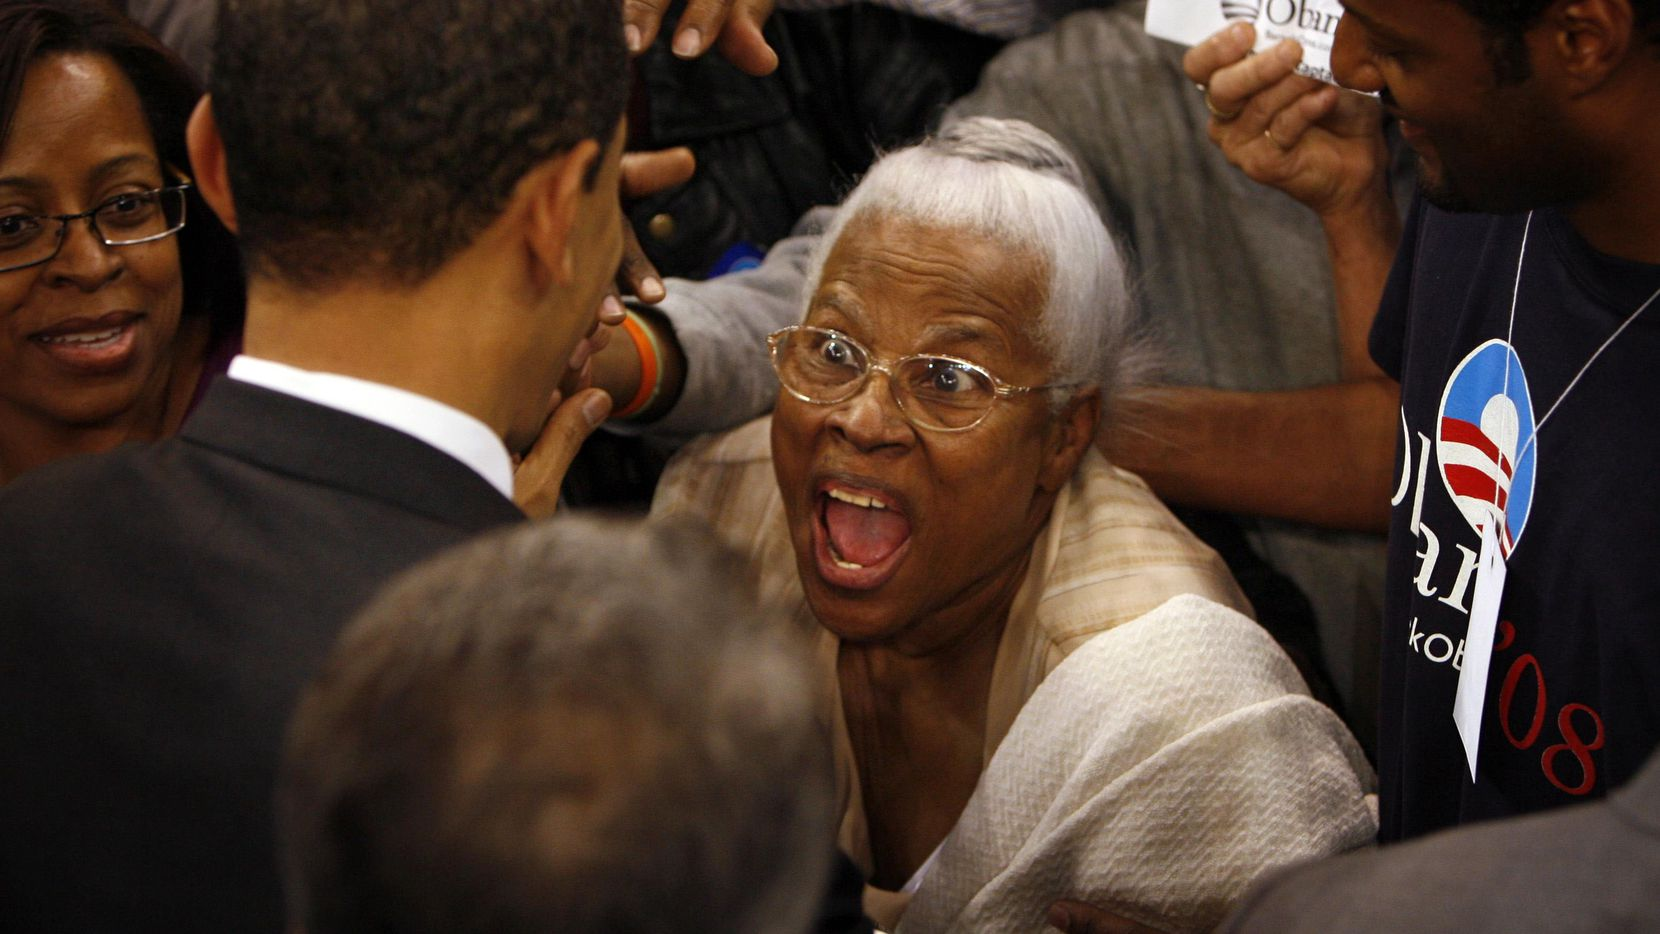 Then-Senator Barack Obama (D-IL) meets Opal Lee in the crowd after his Presidential campaign speech at the Fort Worth Convention Center in Fort Worth on Thursday, February 28, 2008.